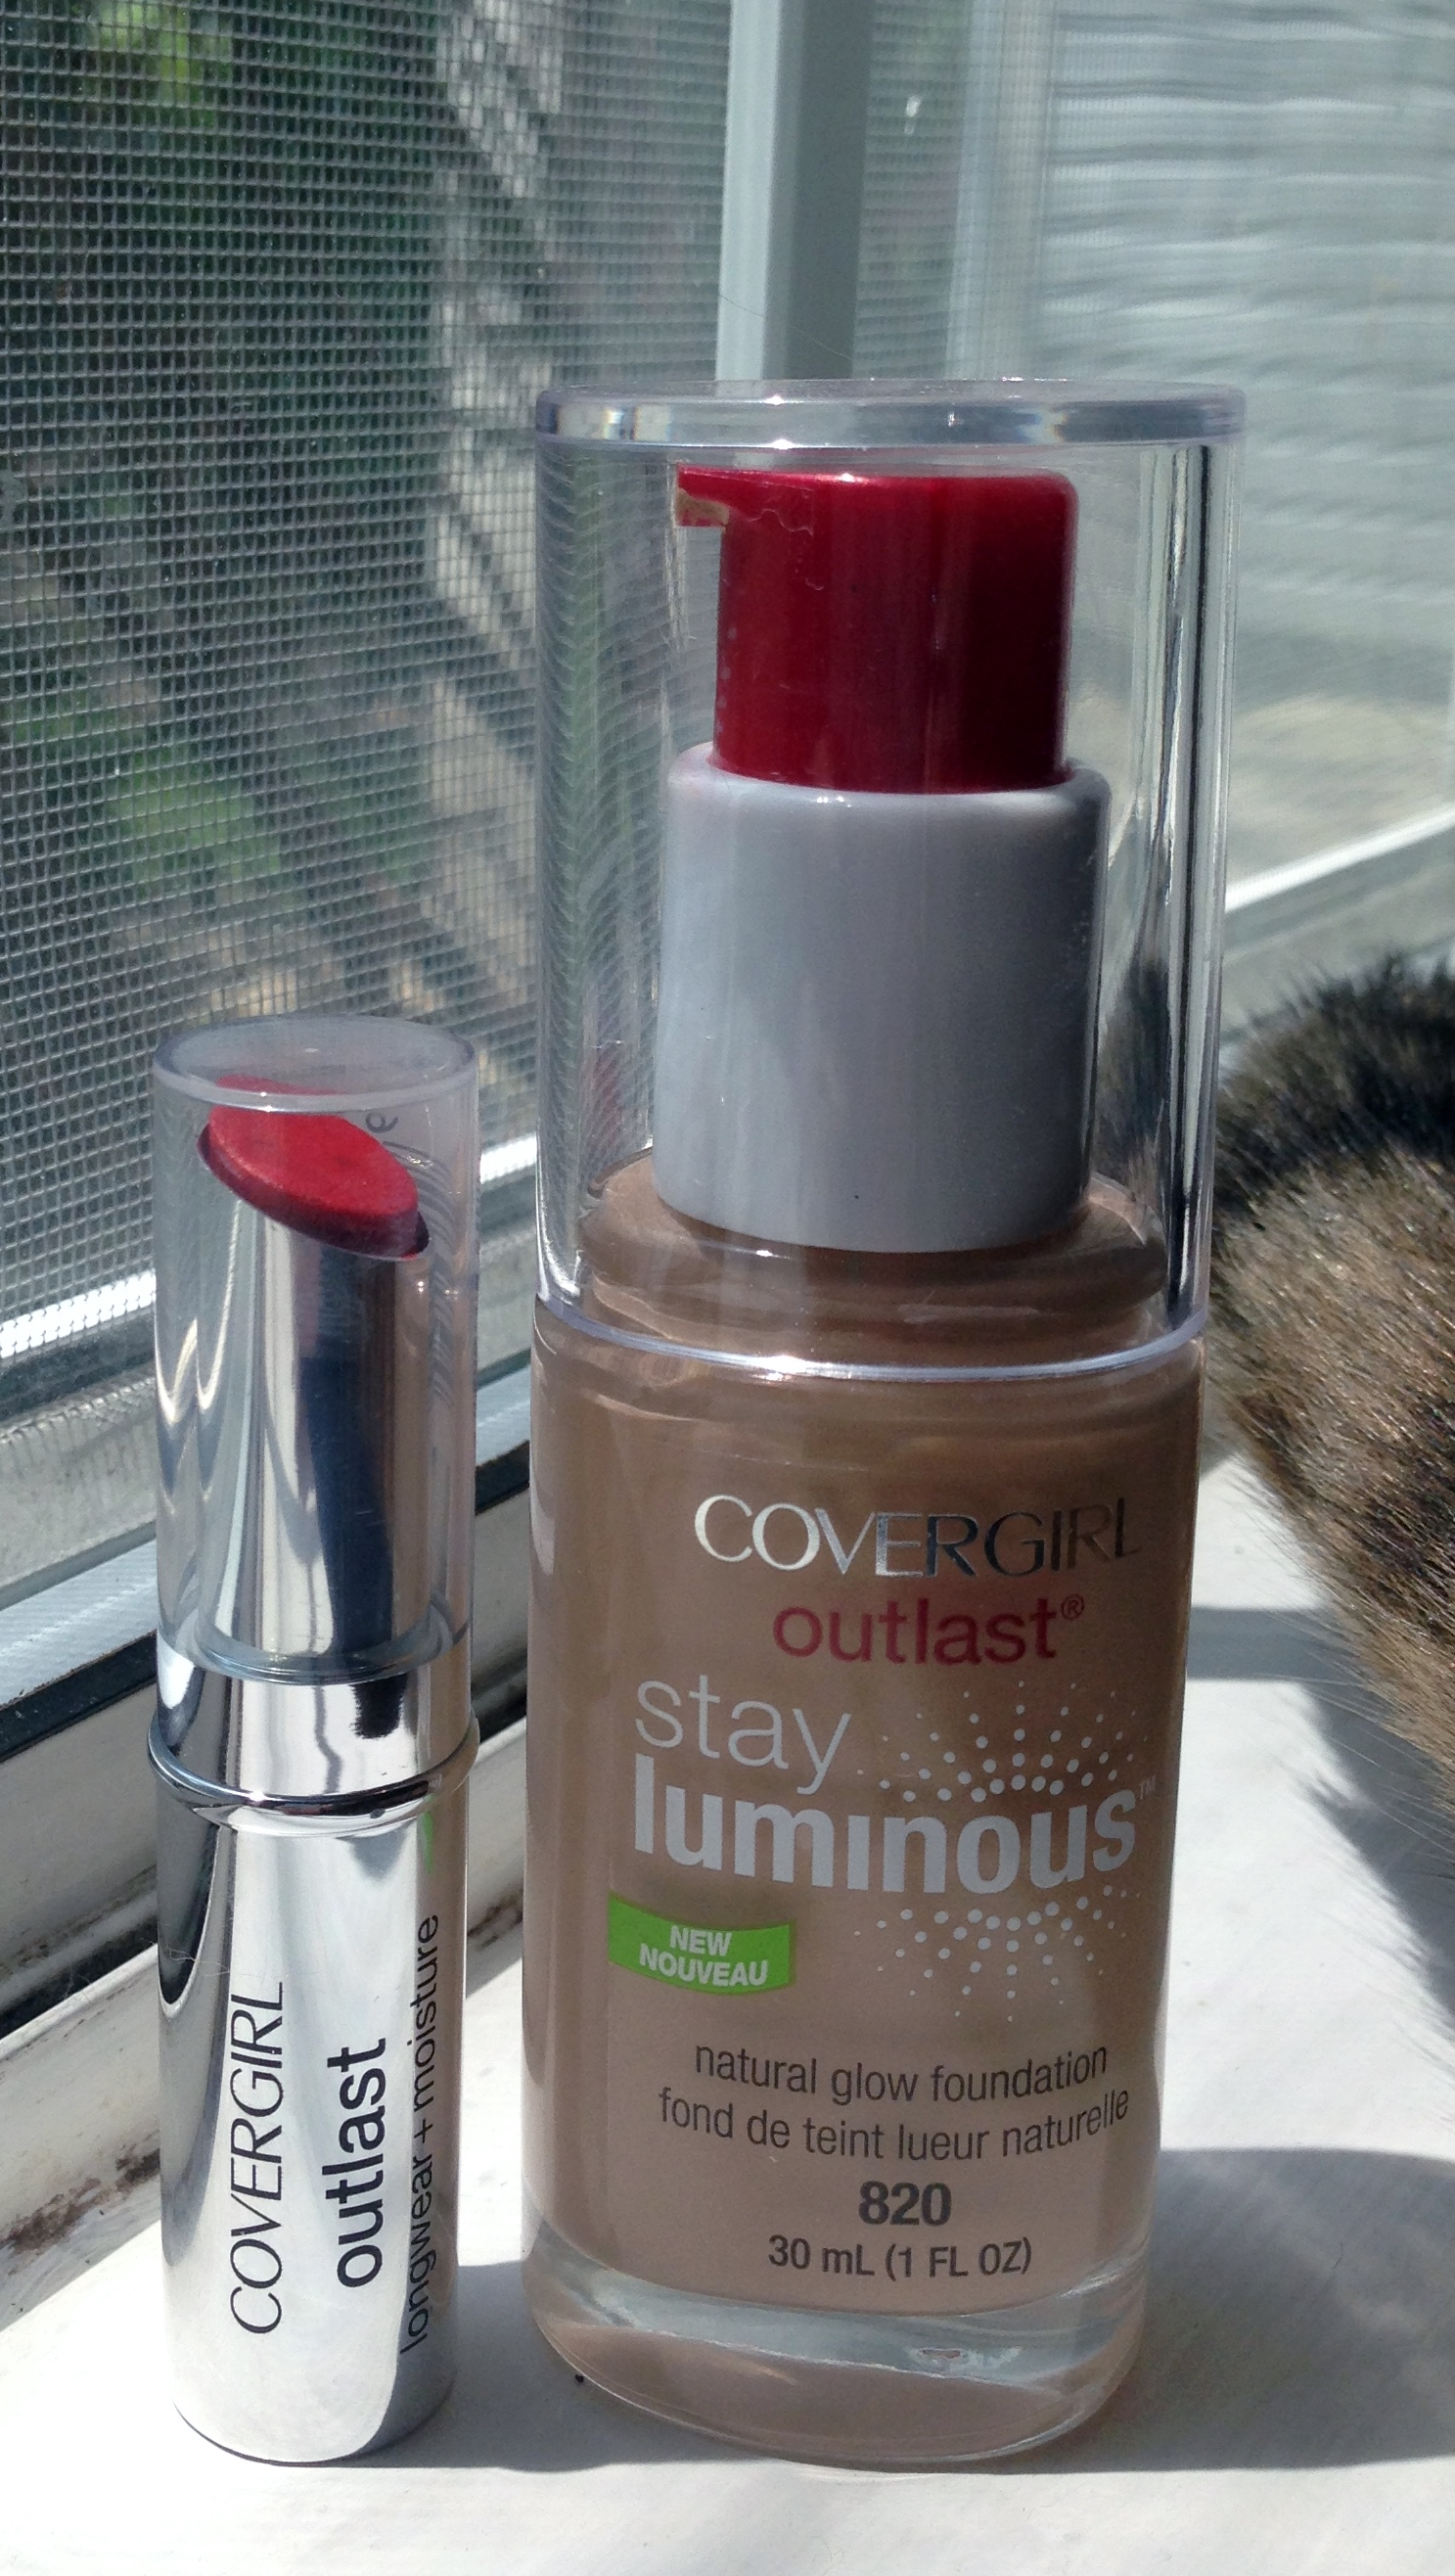 COVERGIRL Outlast Lipstick & Stay Luminous Foundation (with a Lunker tail on the side)